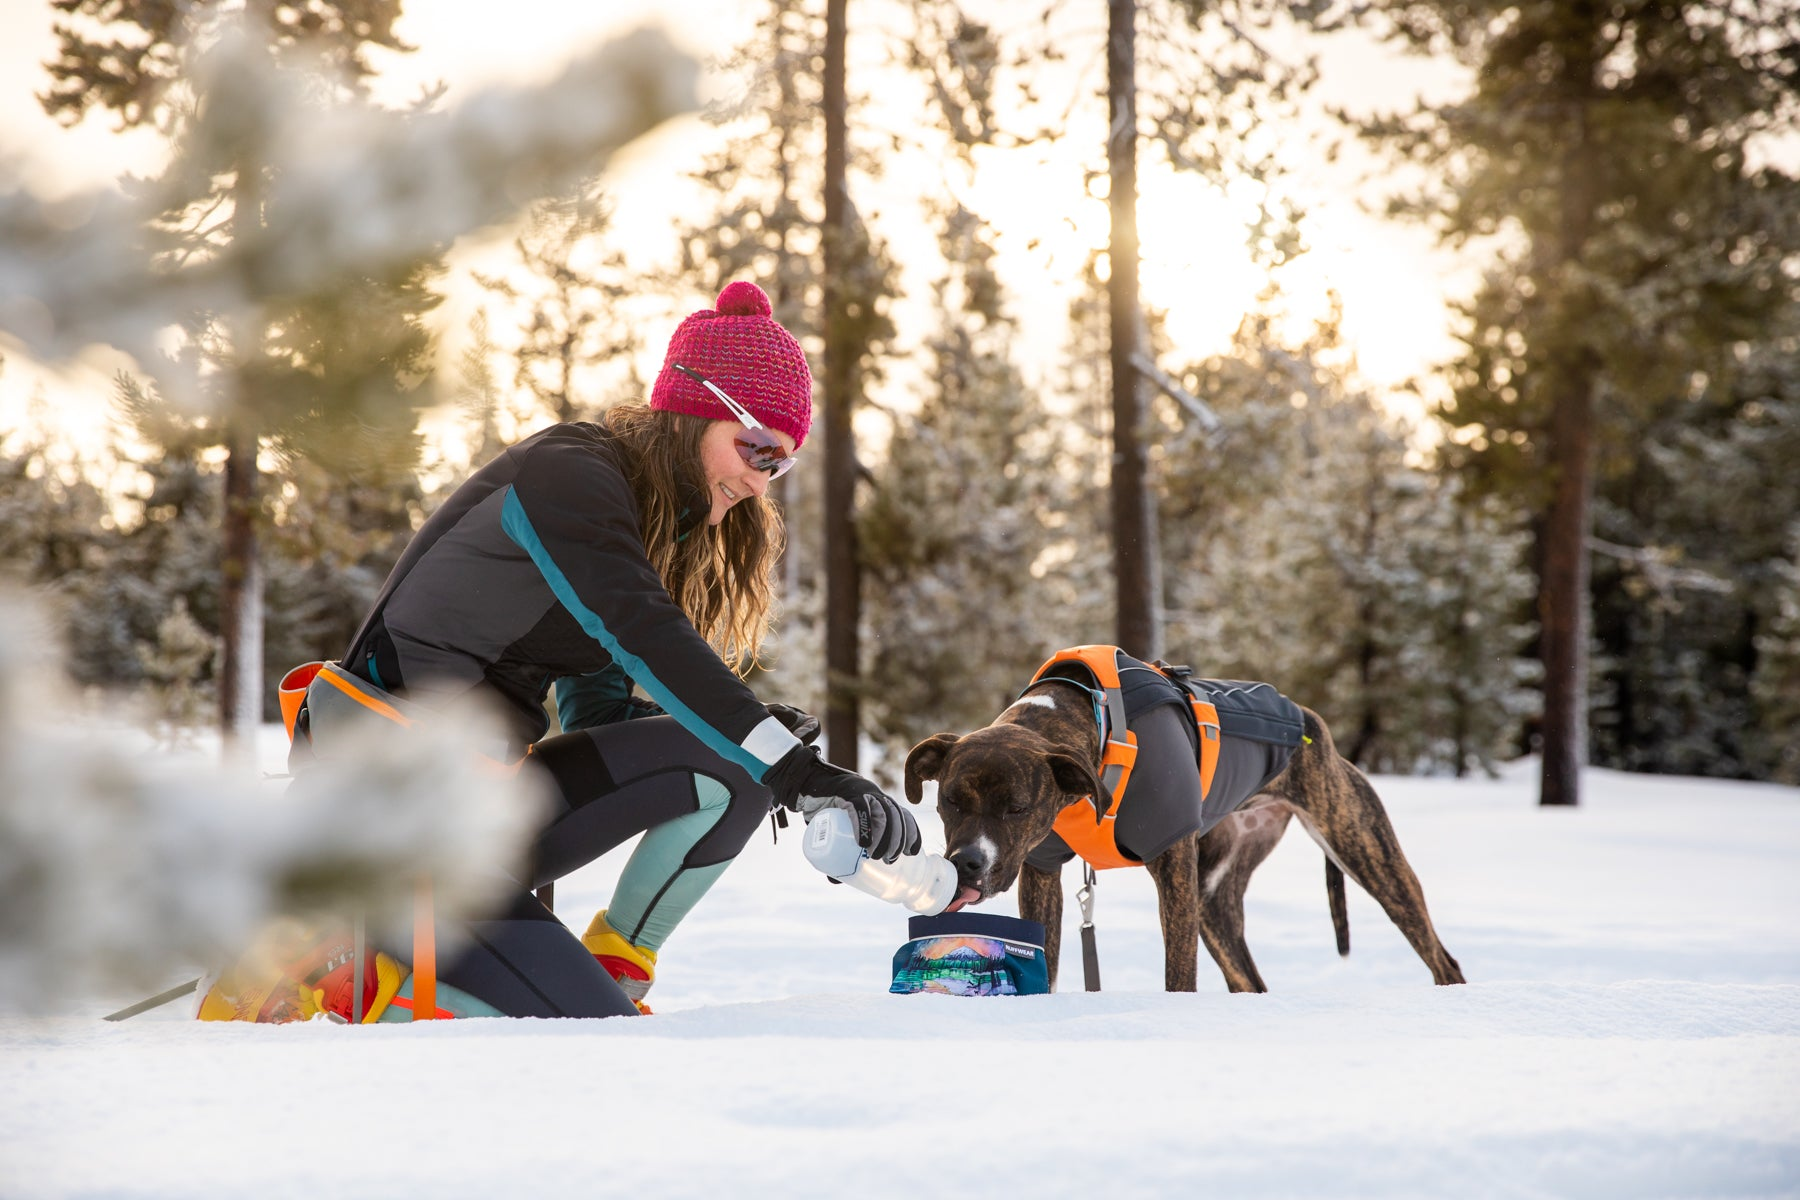 Kelly pours water into a quencher portable dog bowl for Juniper while ski joring.